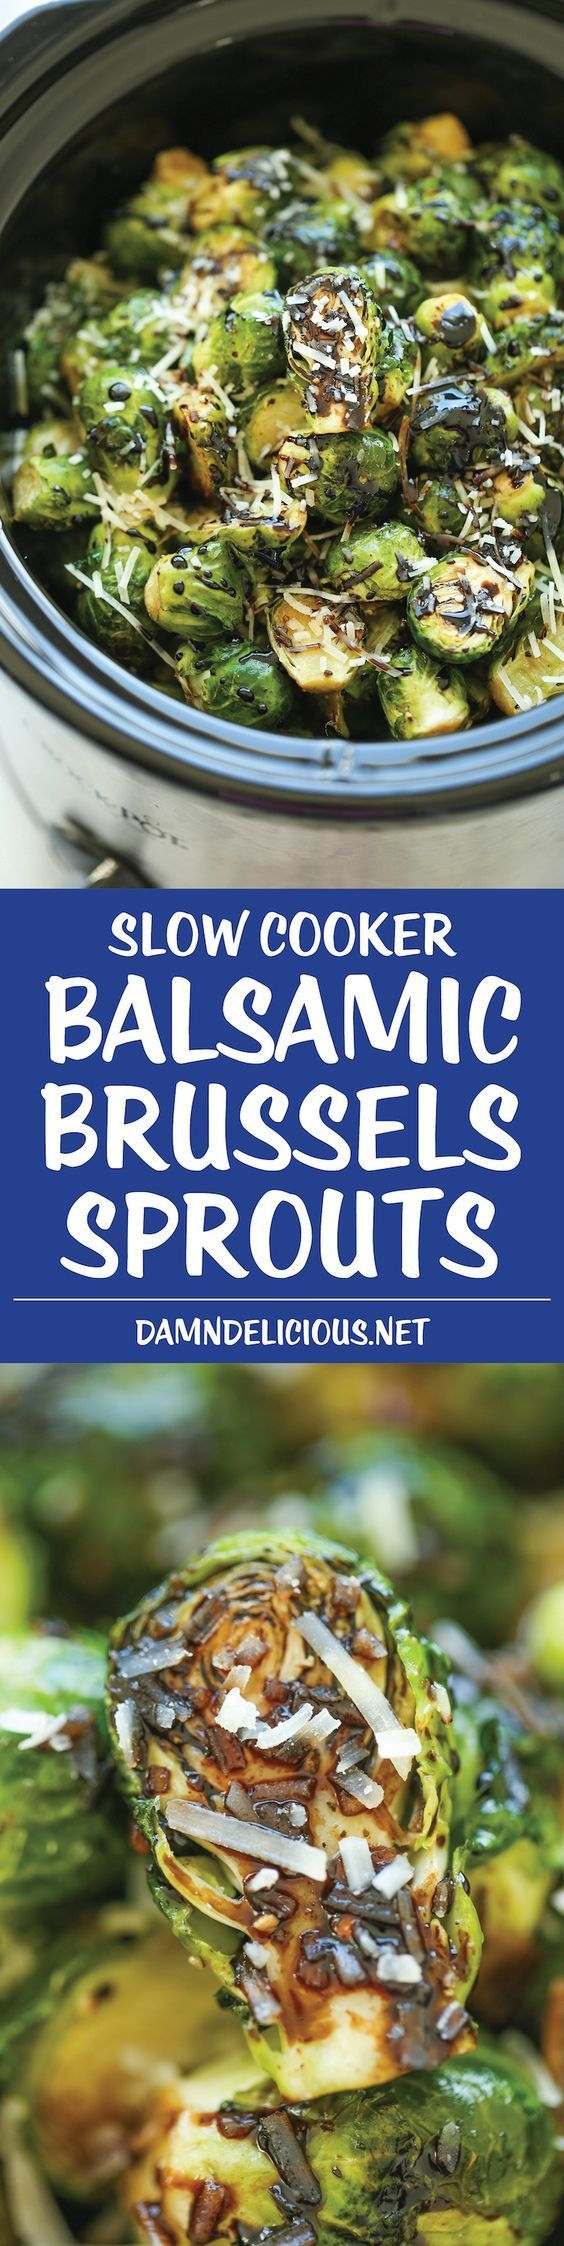 The trick to great Brussels Sprouts? Buy them as fresh as you can (and never go frozen)! Another awesome tip - try  this recipe for slow-cooker Balsamic Brussel Sprouts. A pinch of brown sugar and parmesan thrown in will blow your mind, converting you to crock pot bliss forever!